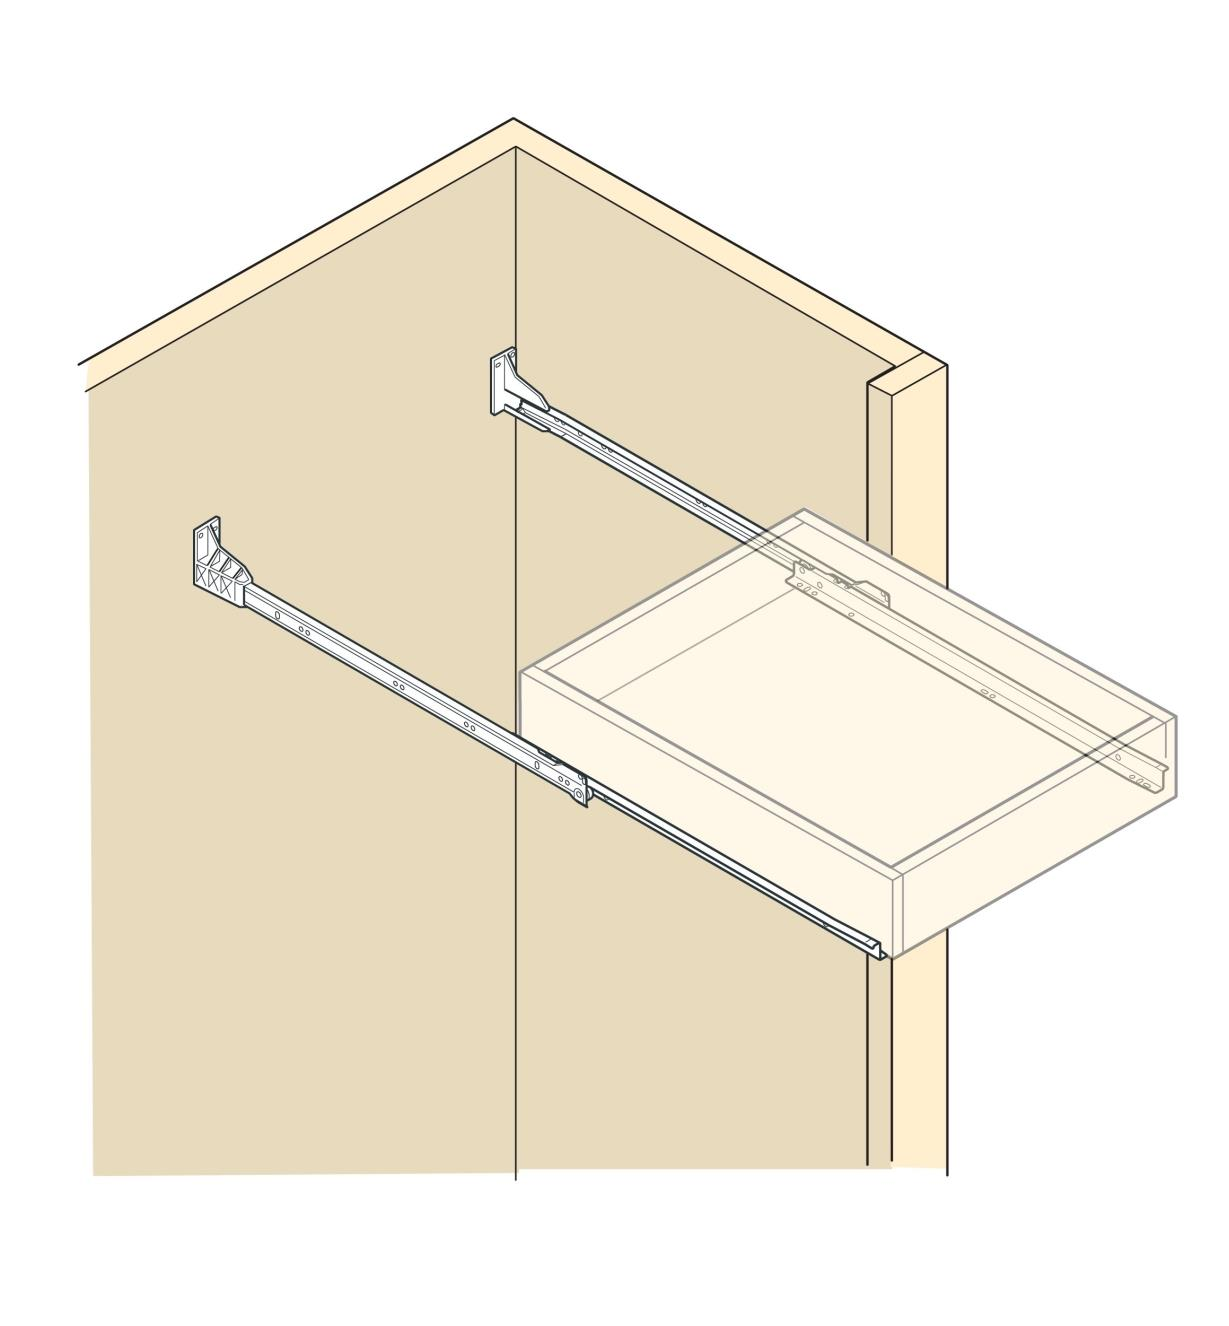 Illustration of a drawer mounted in a cabinet using rear sockets